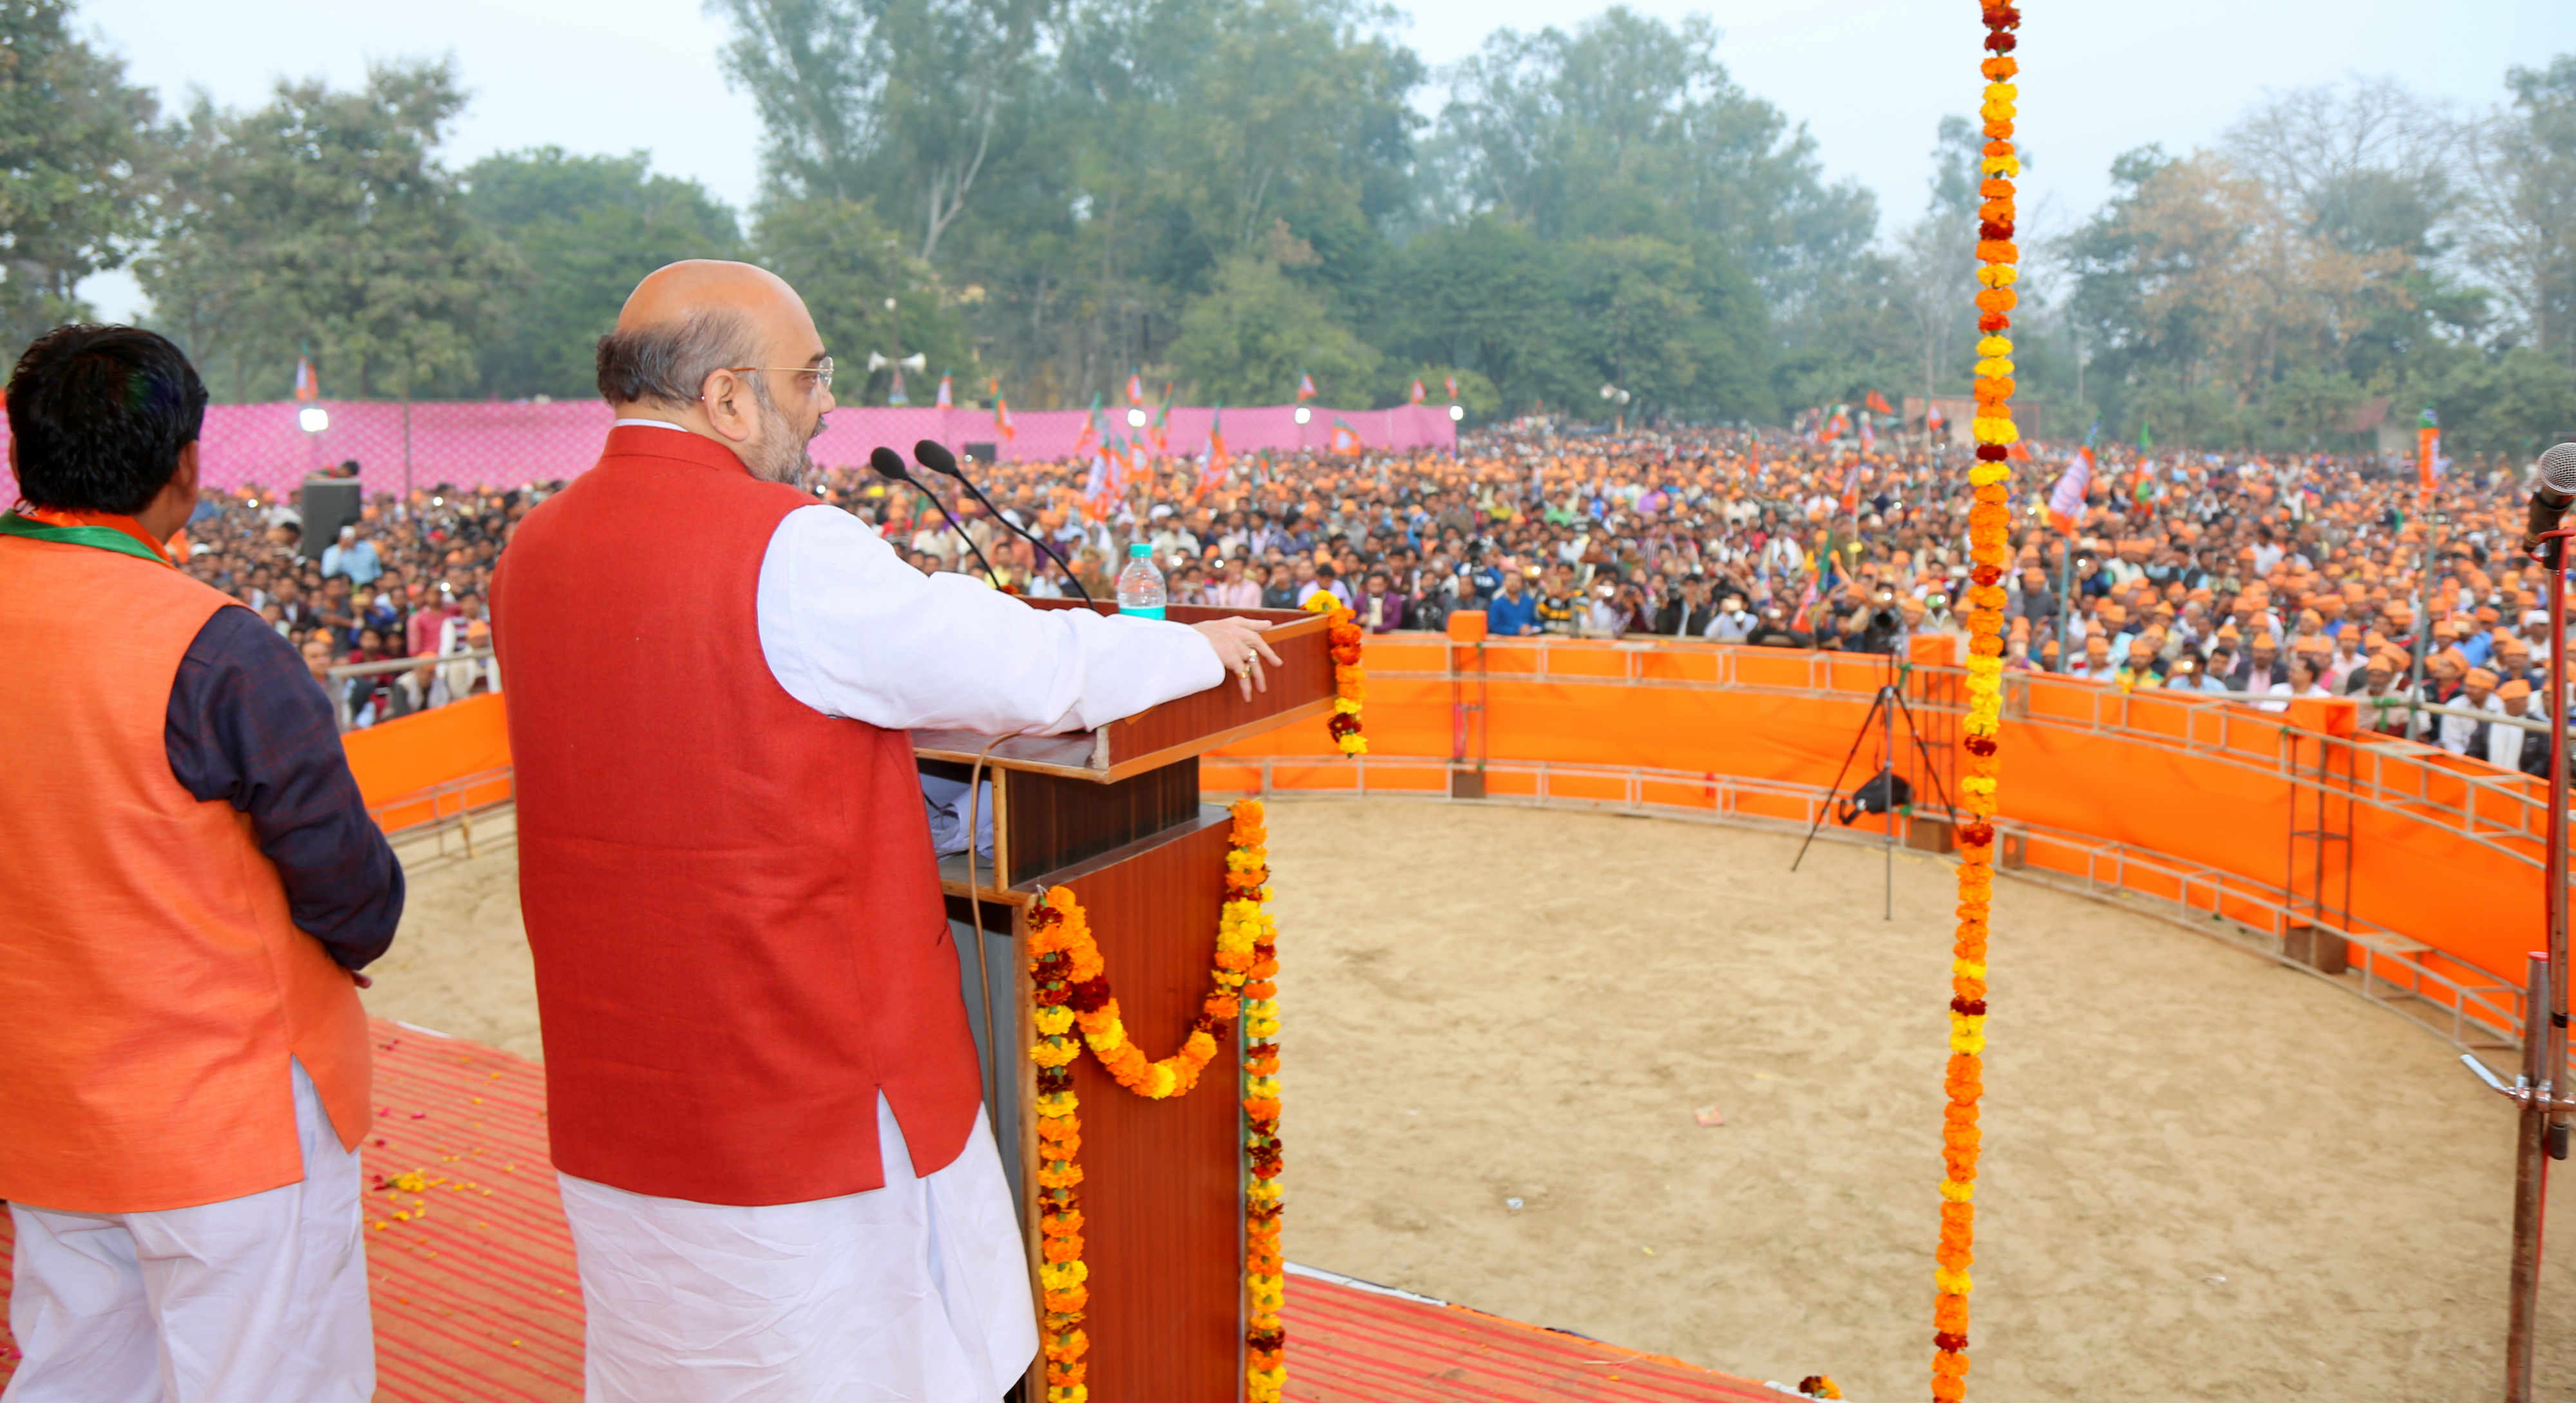 BJP National President Amit Shah addressing a public meeting in Khurja, Bulandshahr, Dhaulana, Hapur and Meerut in Uttar Pradesh on 03.02.2017